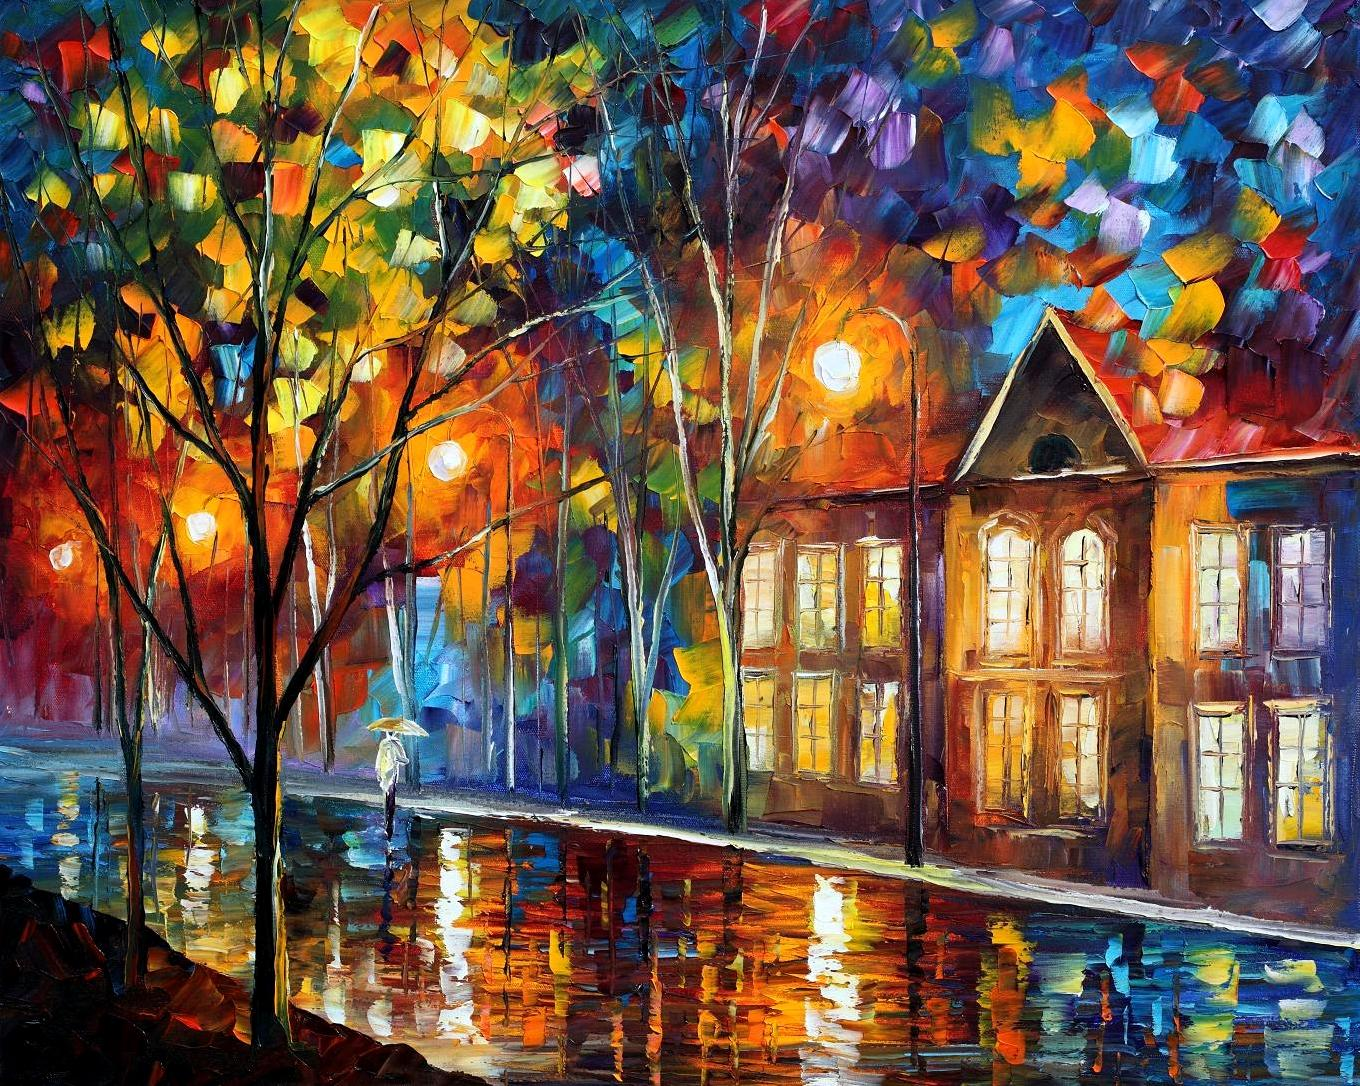 "WHEN THE CITY SLEEPS — PALETTE KNIFE Oil Painting On Canvas By Leonid Afremov - Size 30""x24""(75cm x 60 cm)"